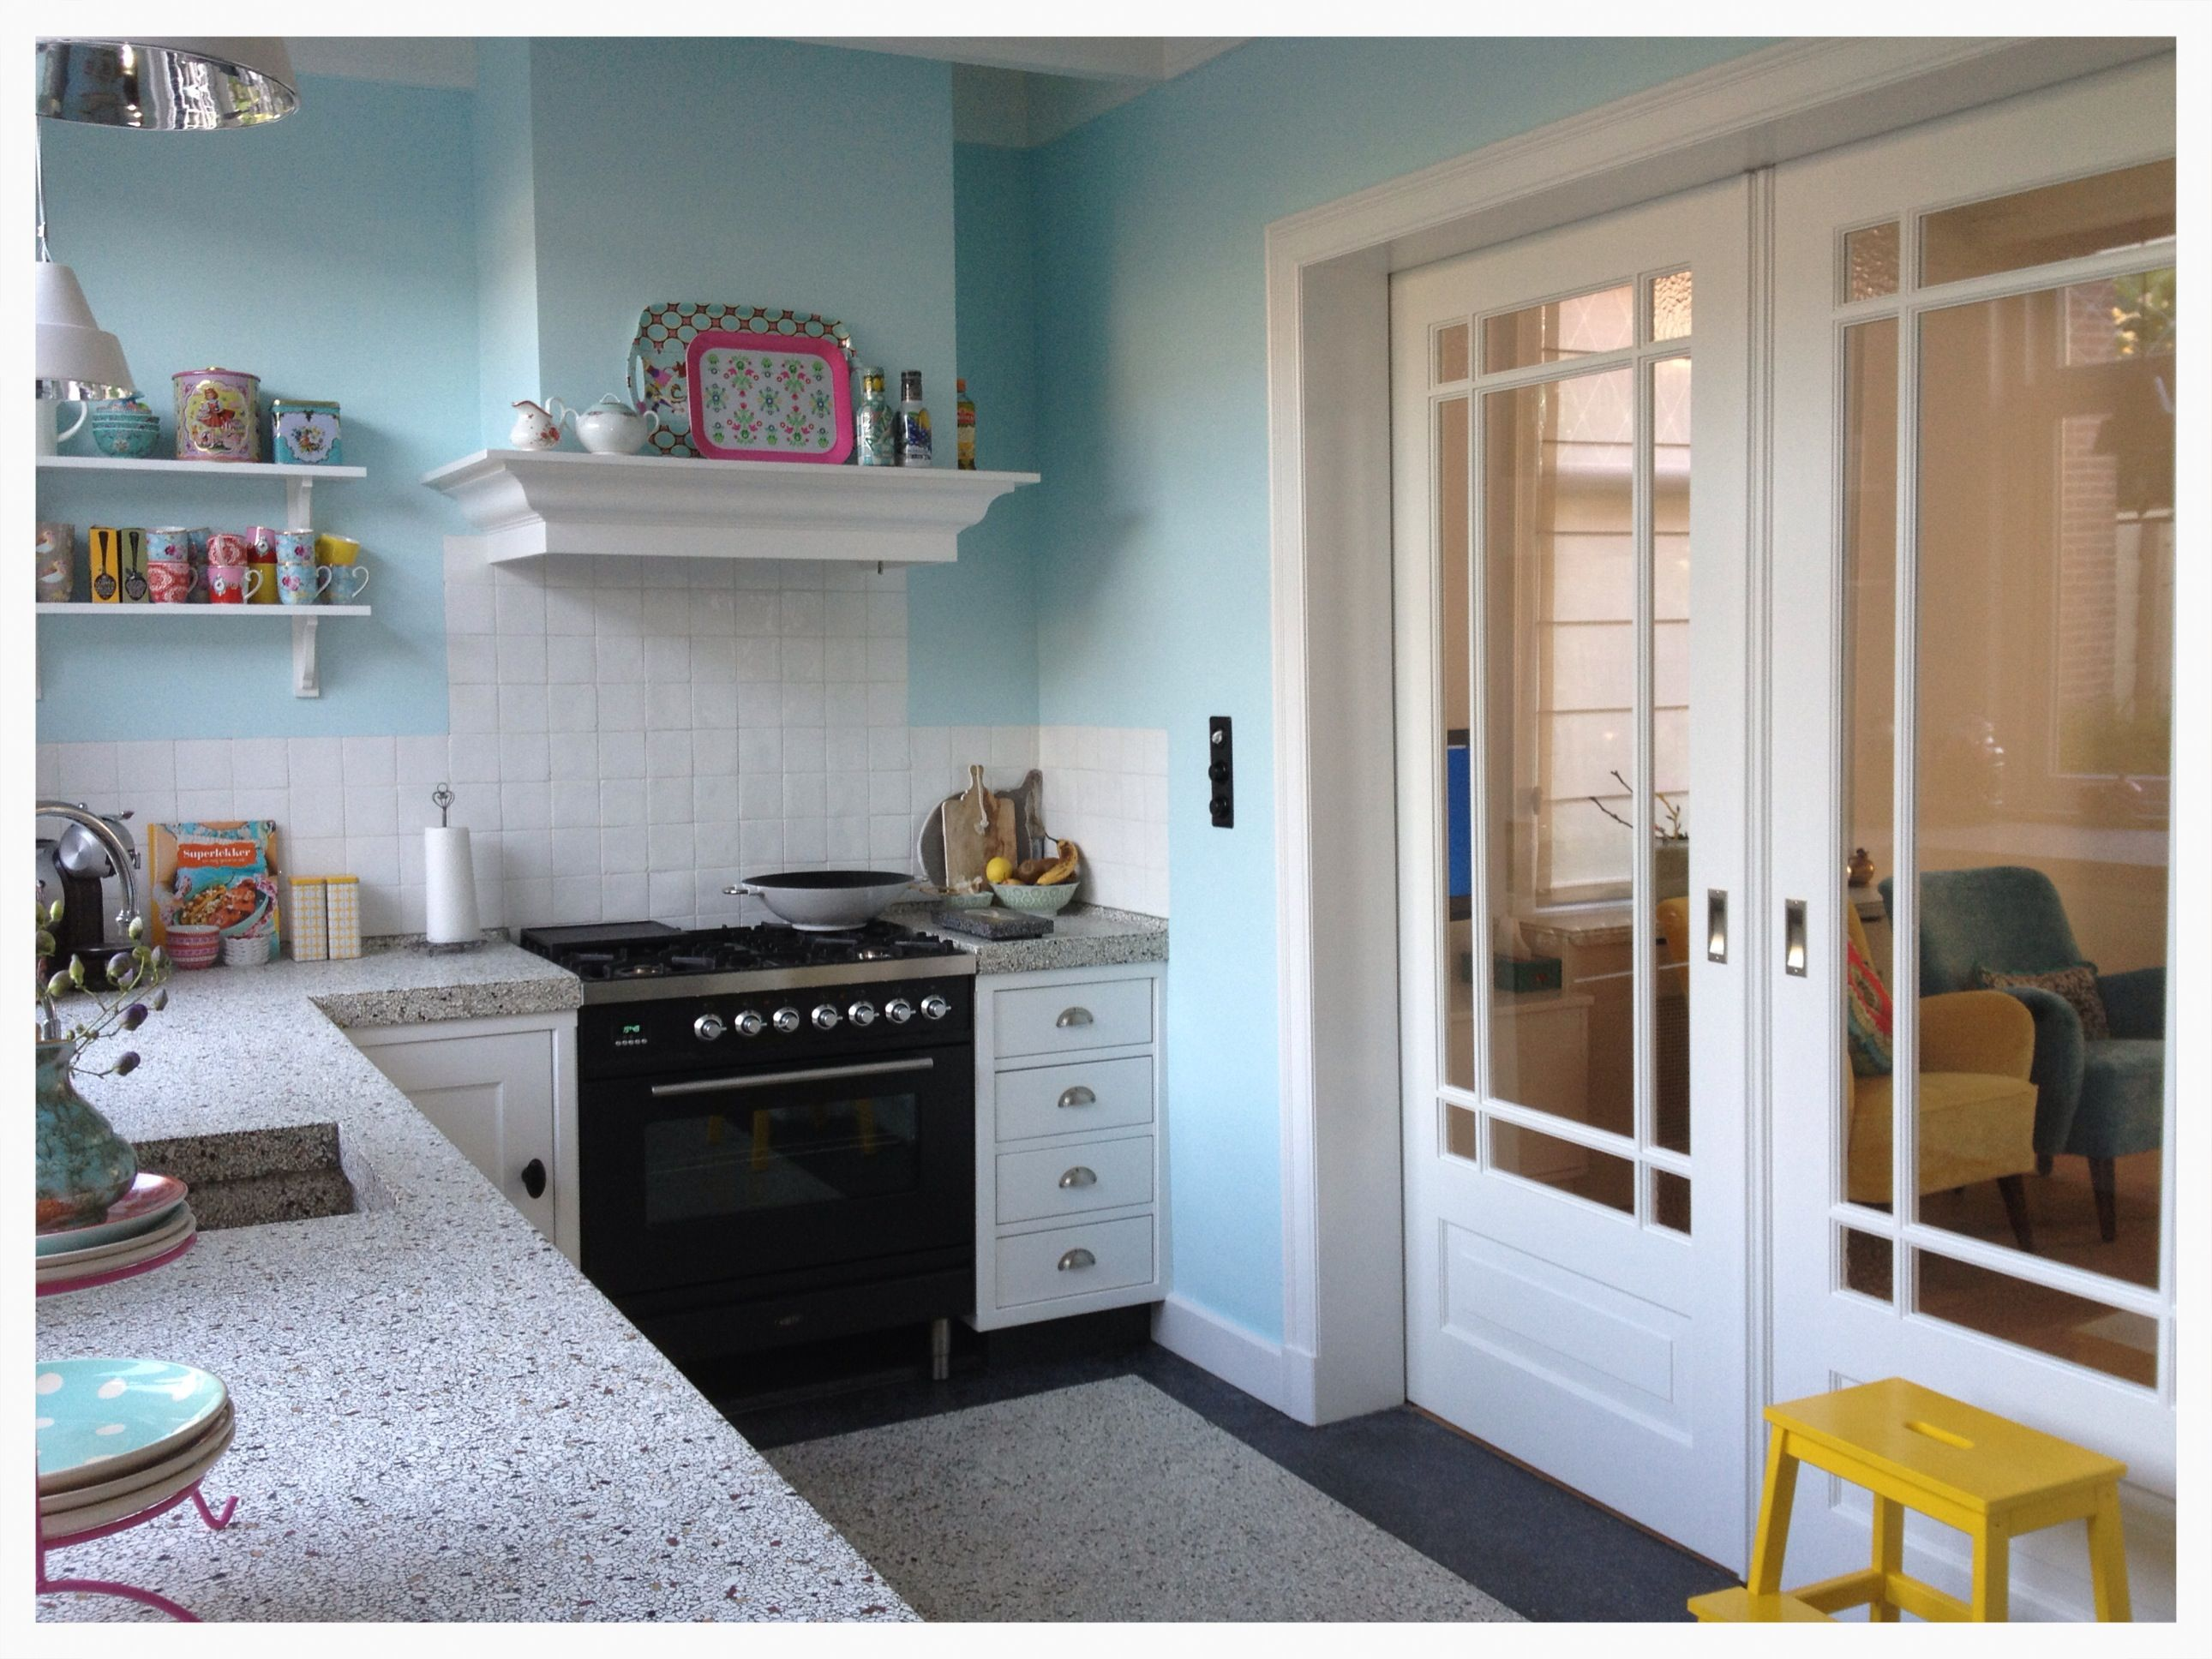 Our new kitchen: blue walls terrazzo floor and work surface